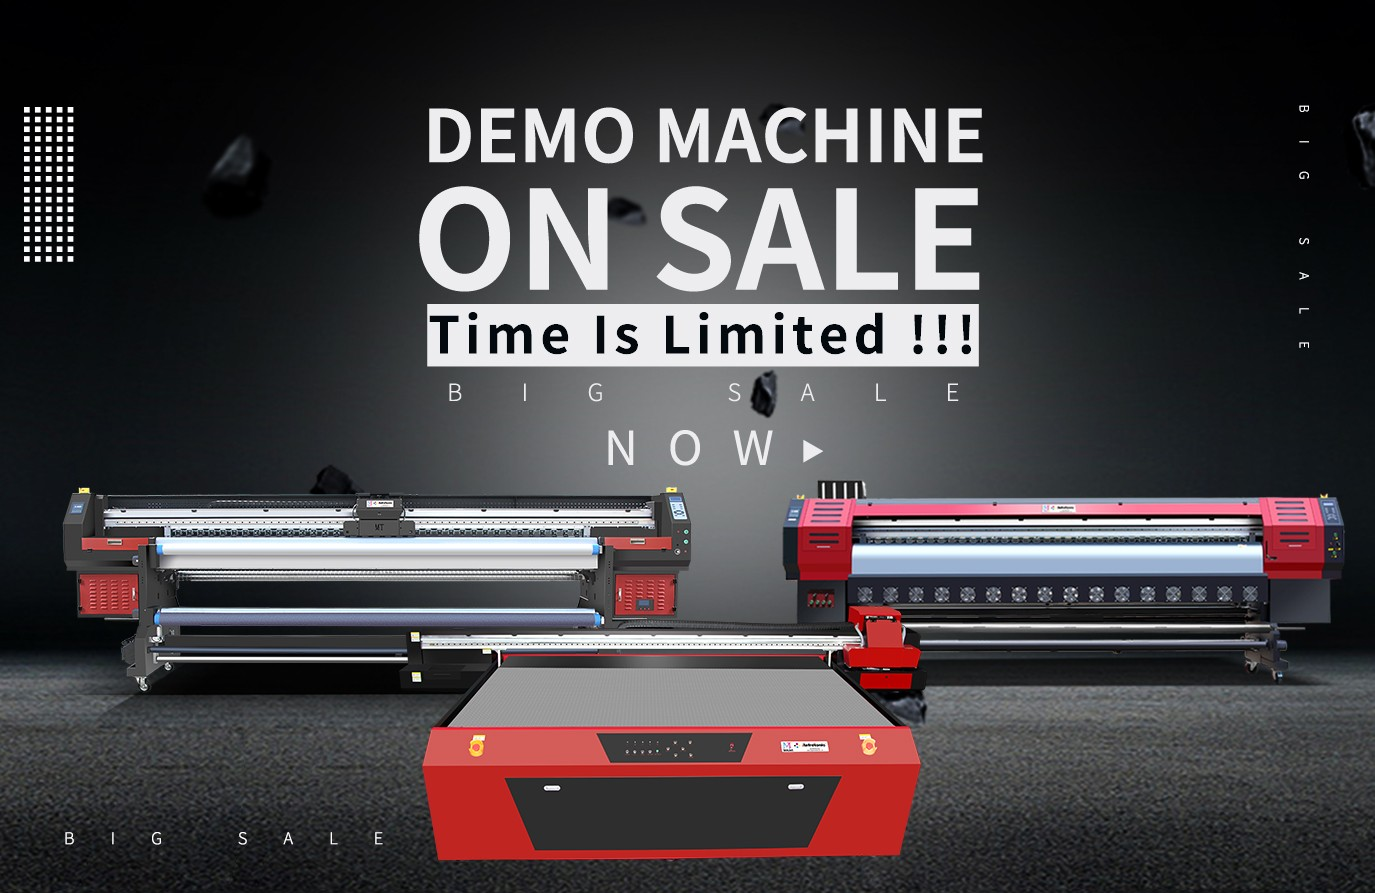 Demo Machine On Sale !!